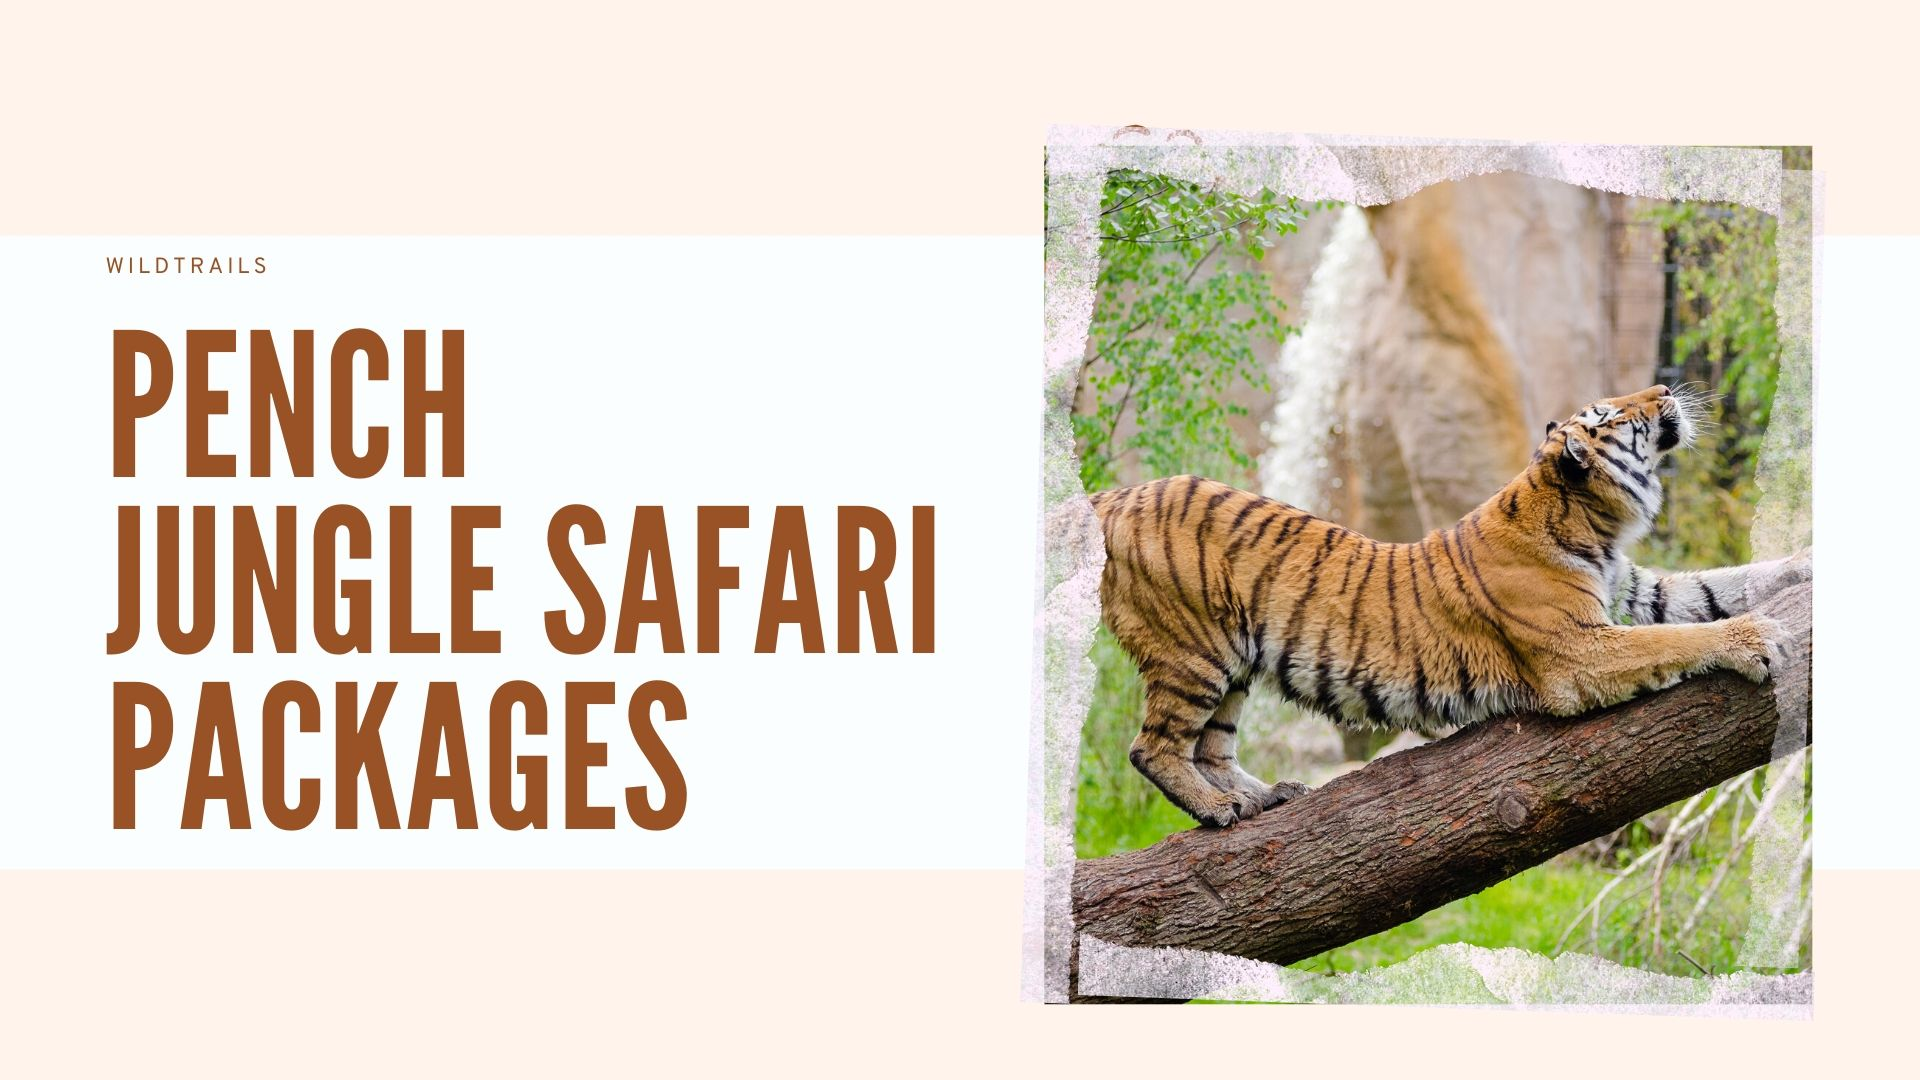 Pench Jungle Safari Packages